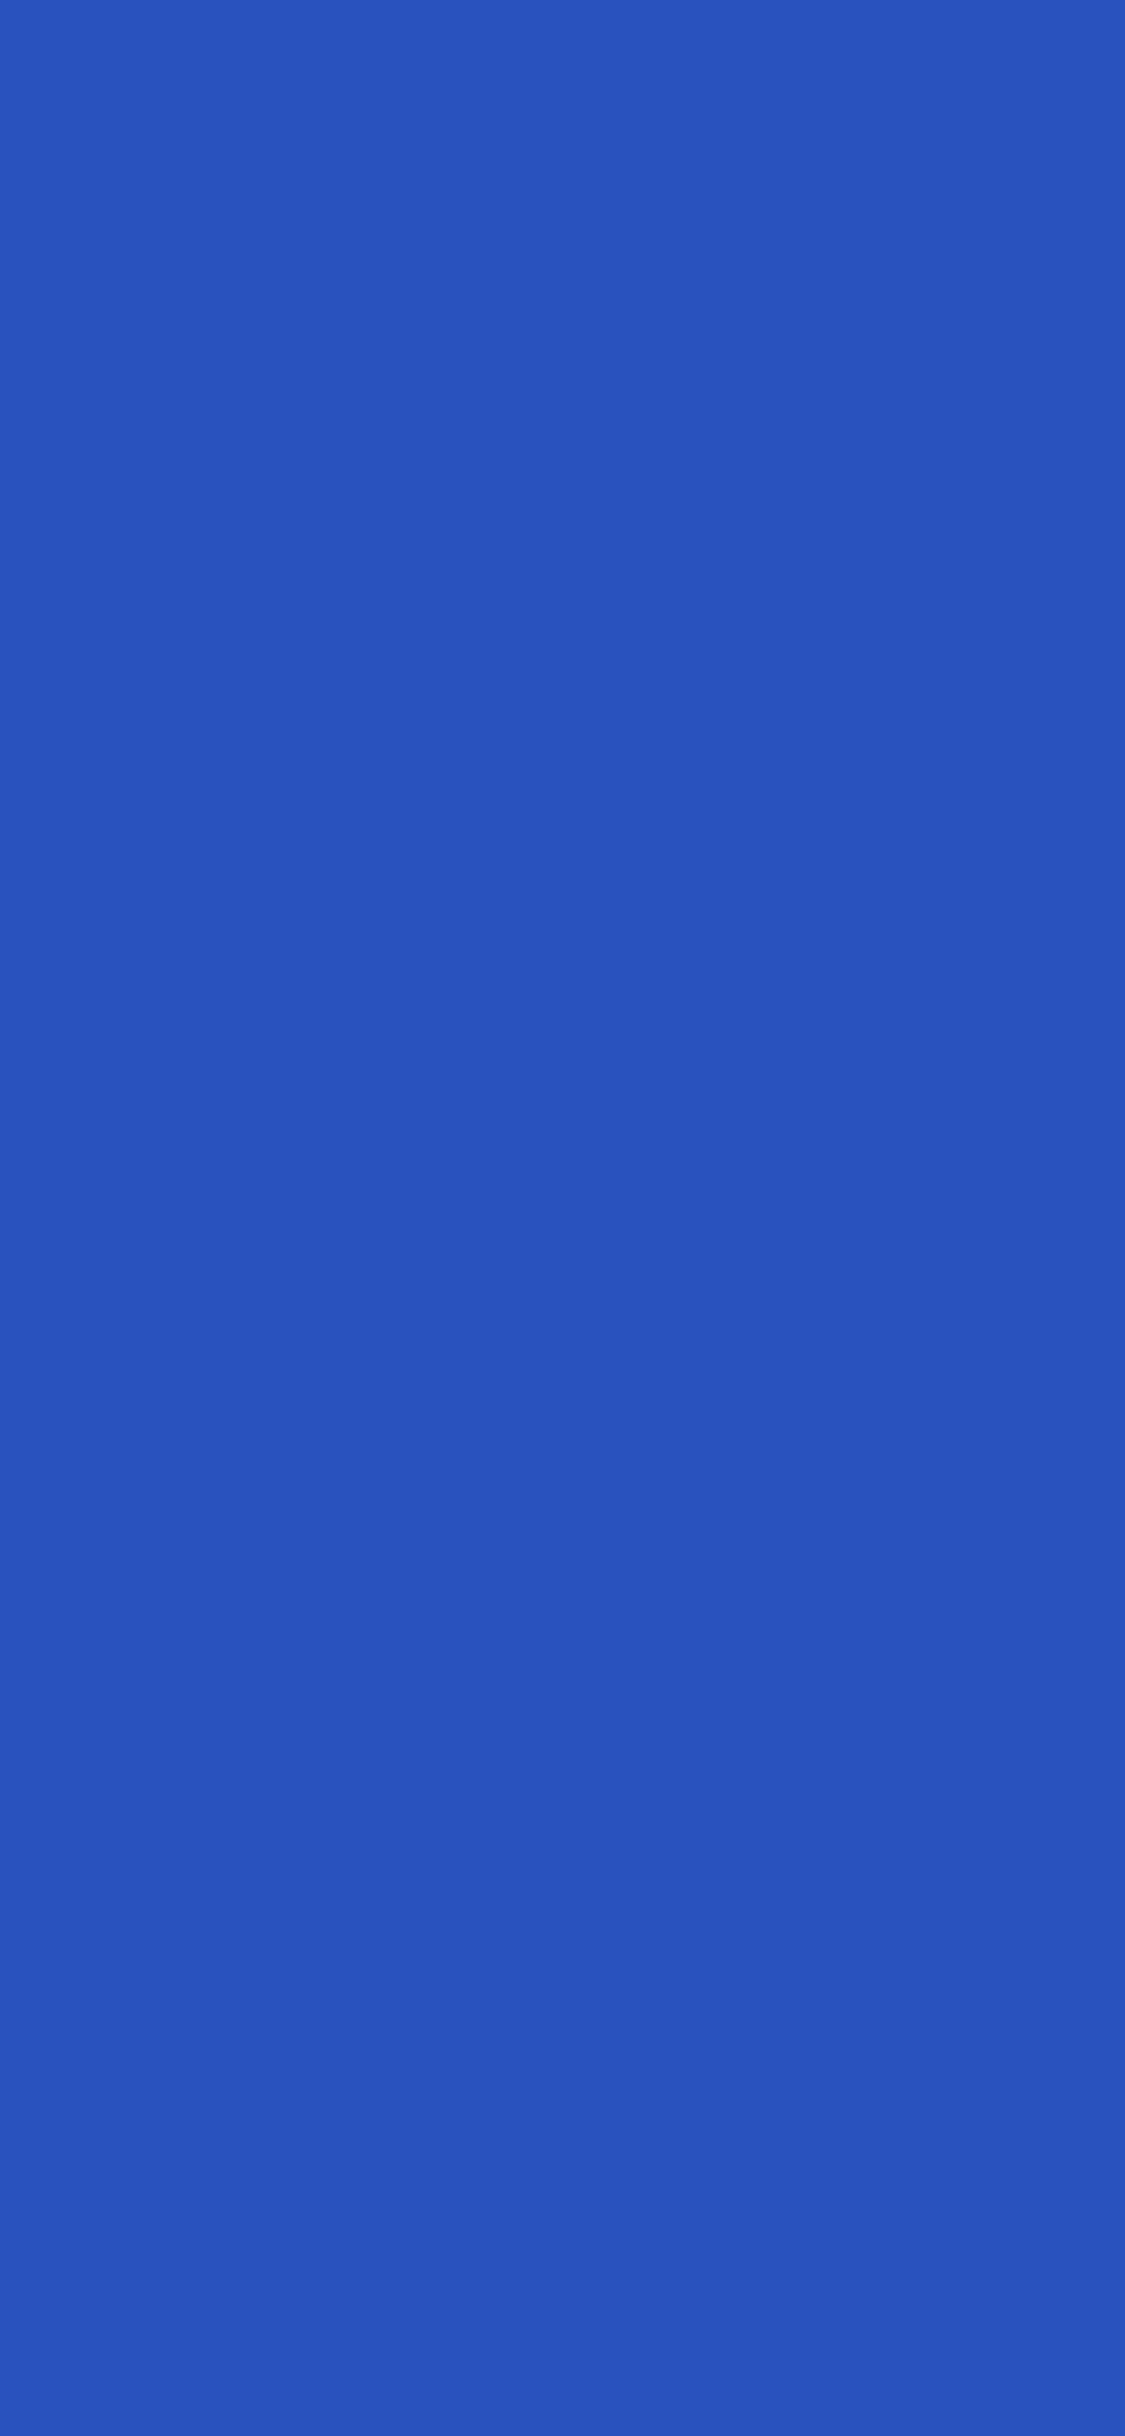 1125x2436 Cerulean Blue Solid Color Background